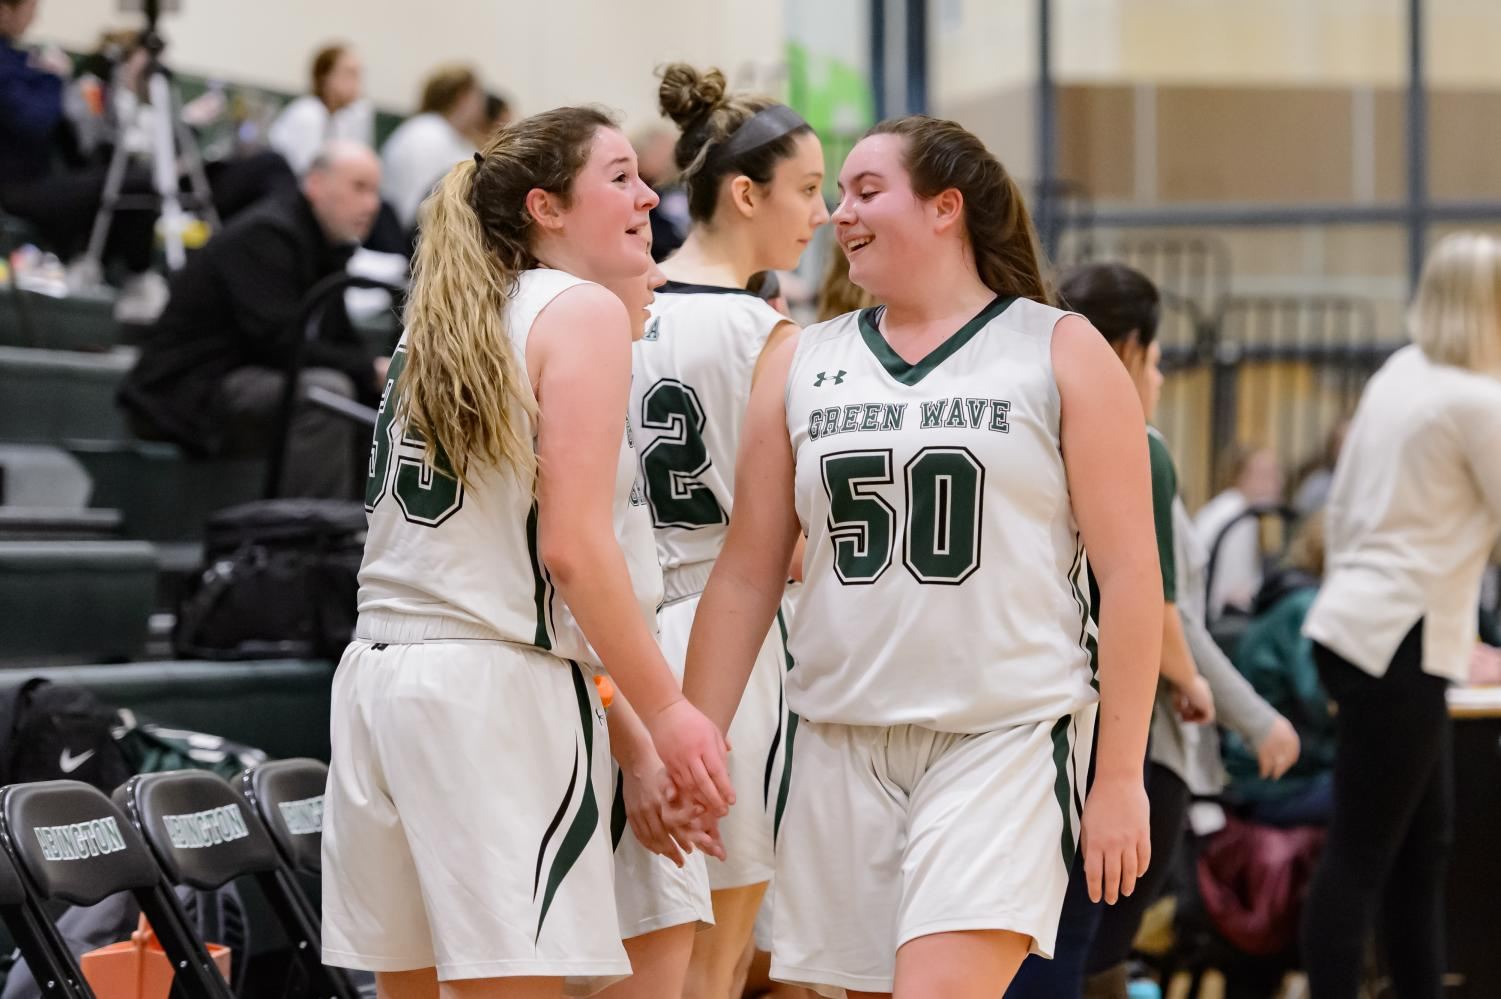 In the January 27, 2019 game against the Hull Pirates, Abington High School senior captains Kristyanna Remillard and Madison O'Connell engage in a lighthearted moment on the court.